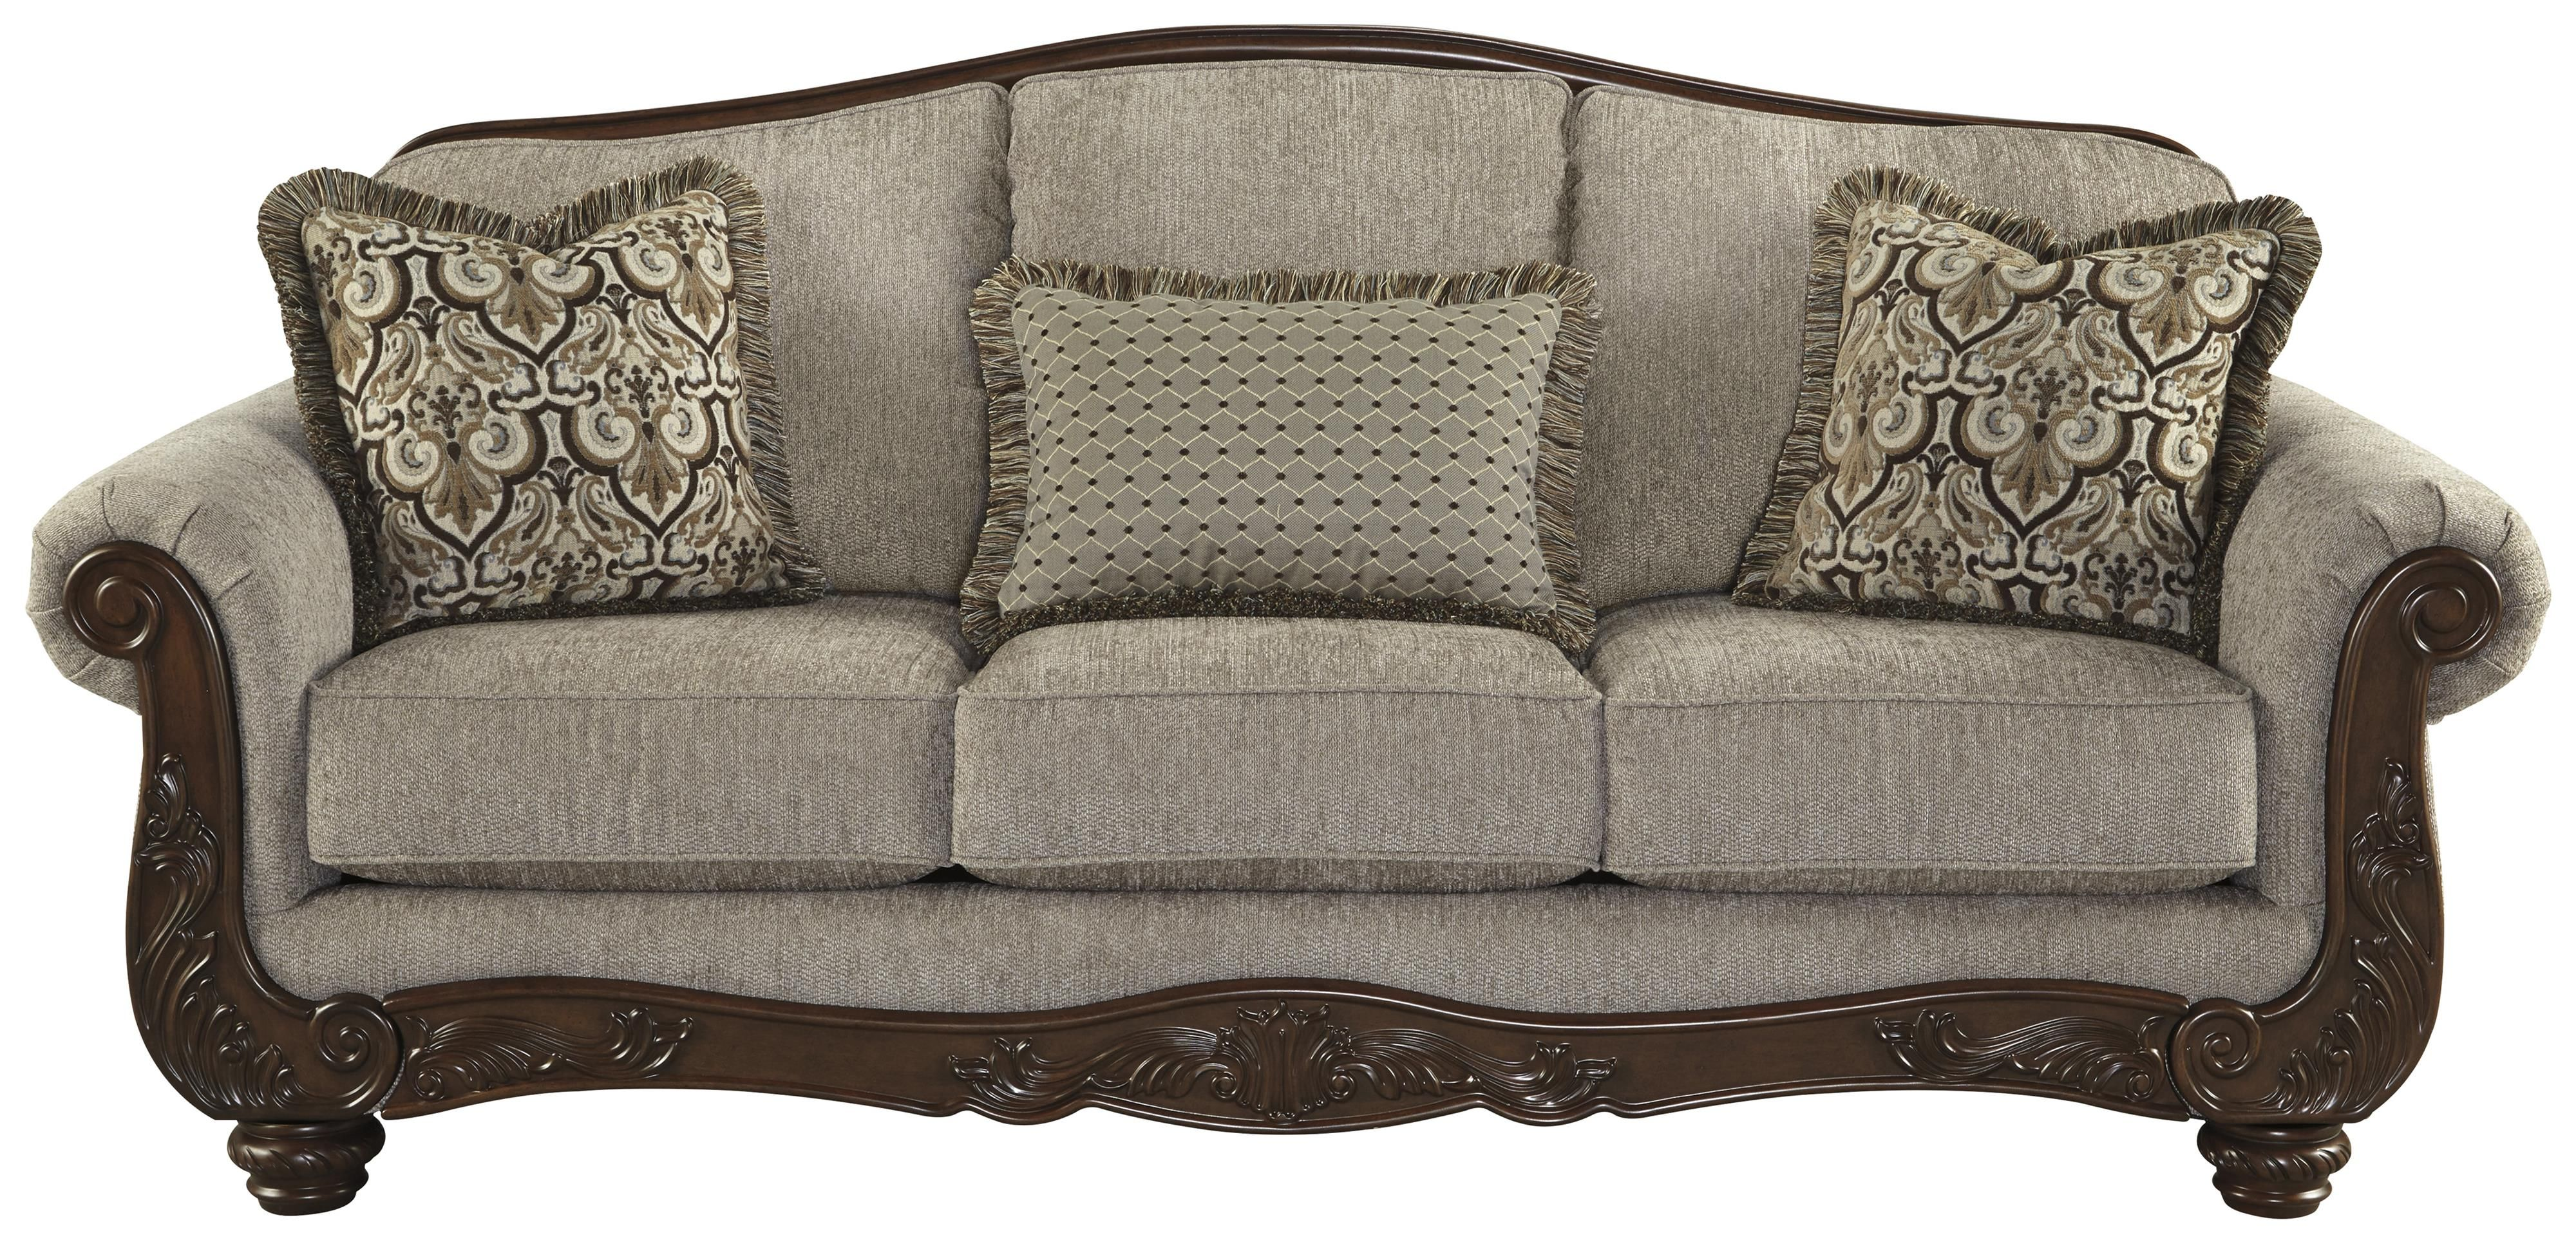 Cecilyn Sofa By Signature Design By Ashley At Beck S Furniture With Images Traditional Sofa Ashley Furniture Living Room Upholstered Sofa